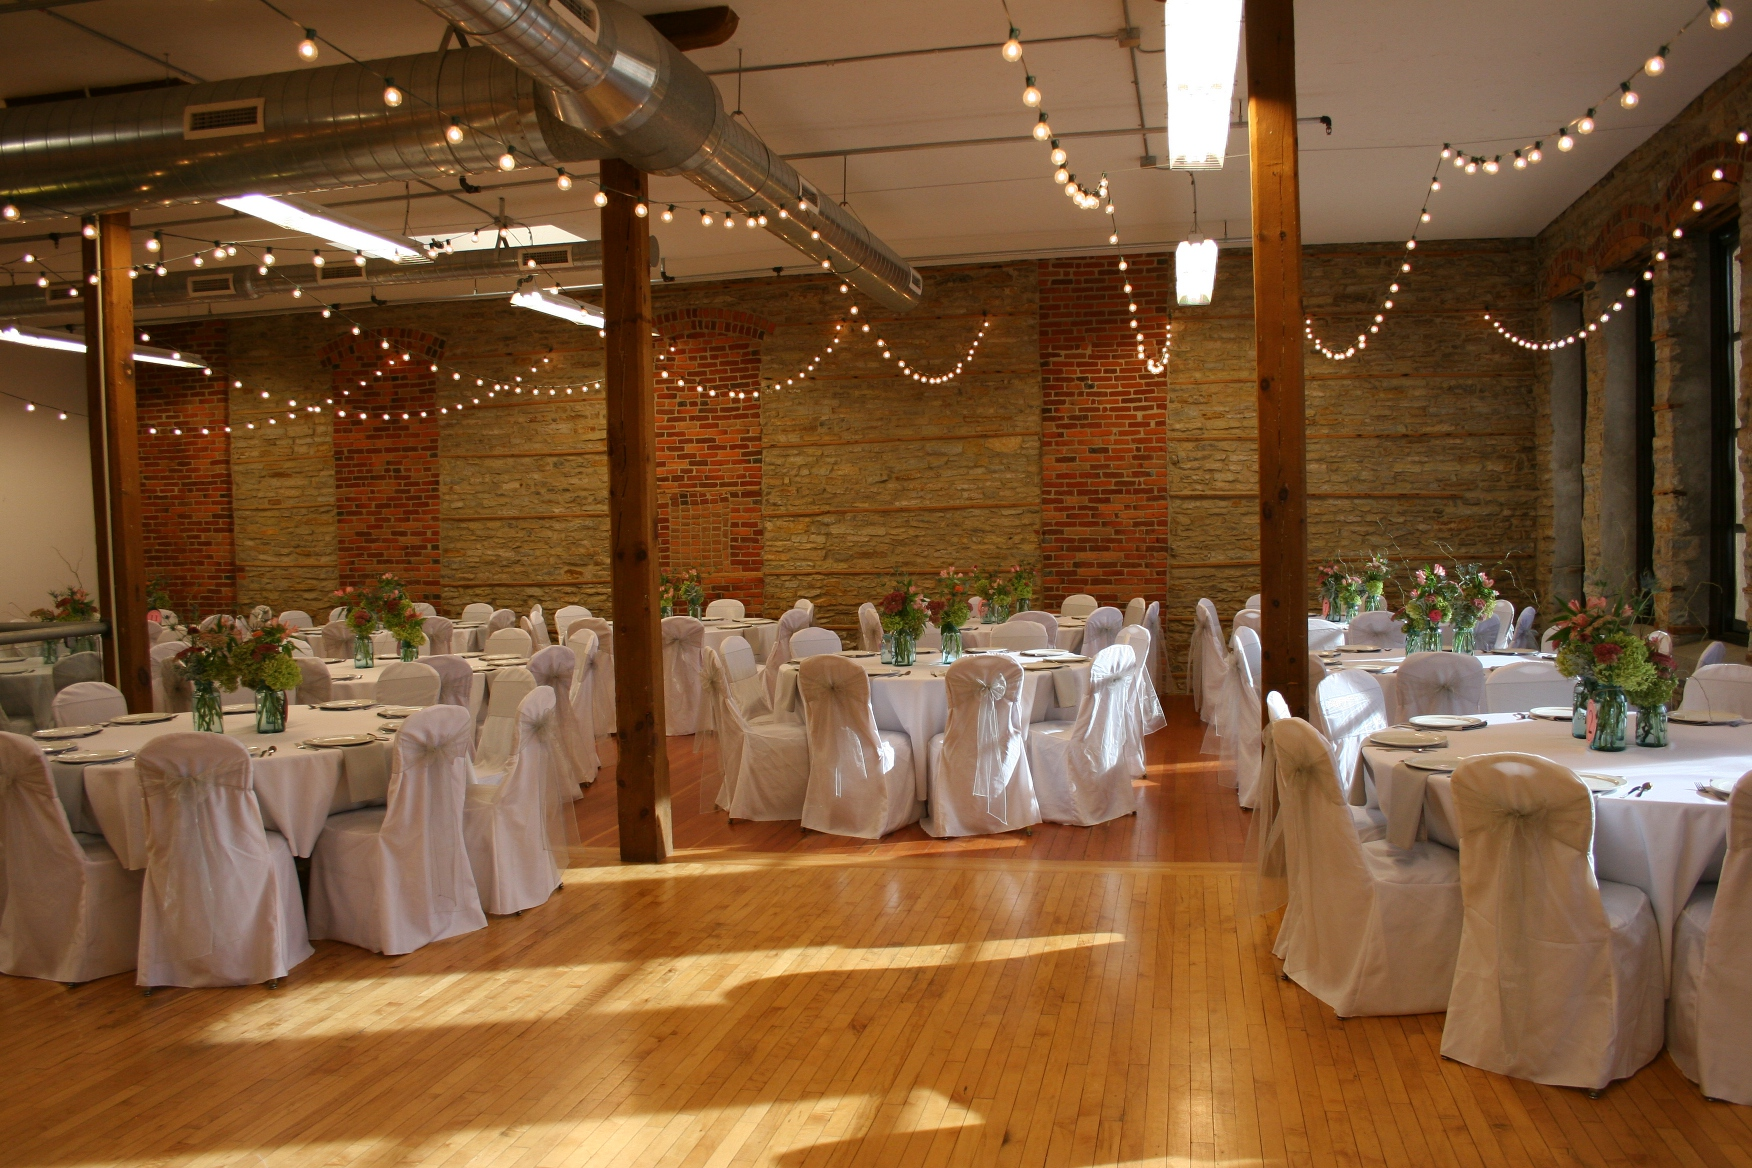 One Last View Of The Reception Venue With A Space Left Open For Dance Floor